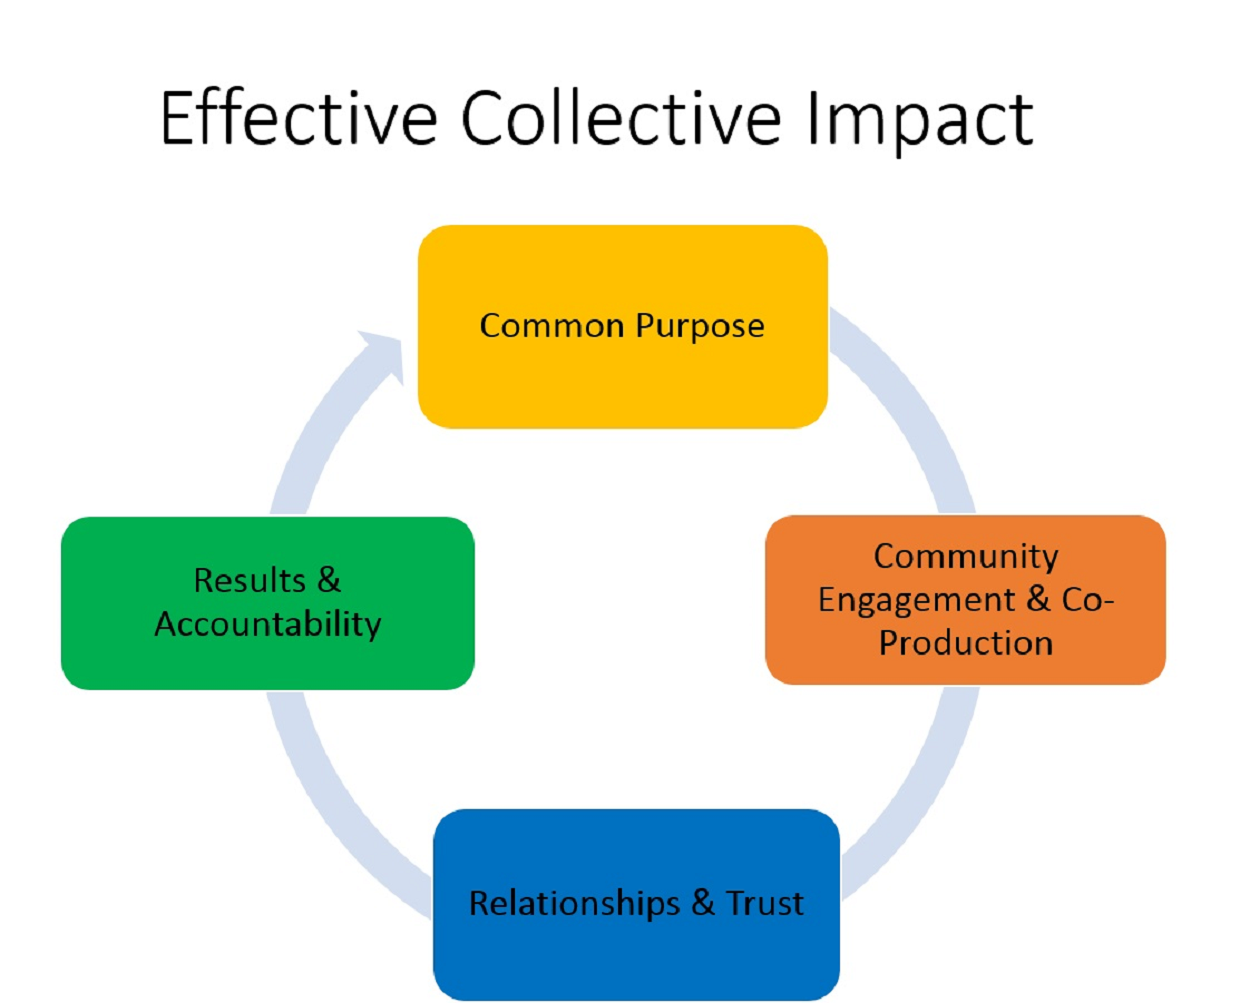 The Four Elements of Effective Collective Impact all work together